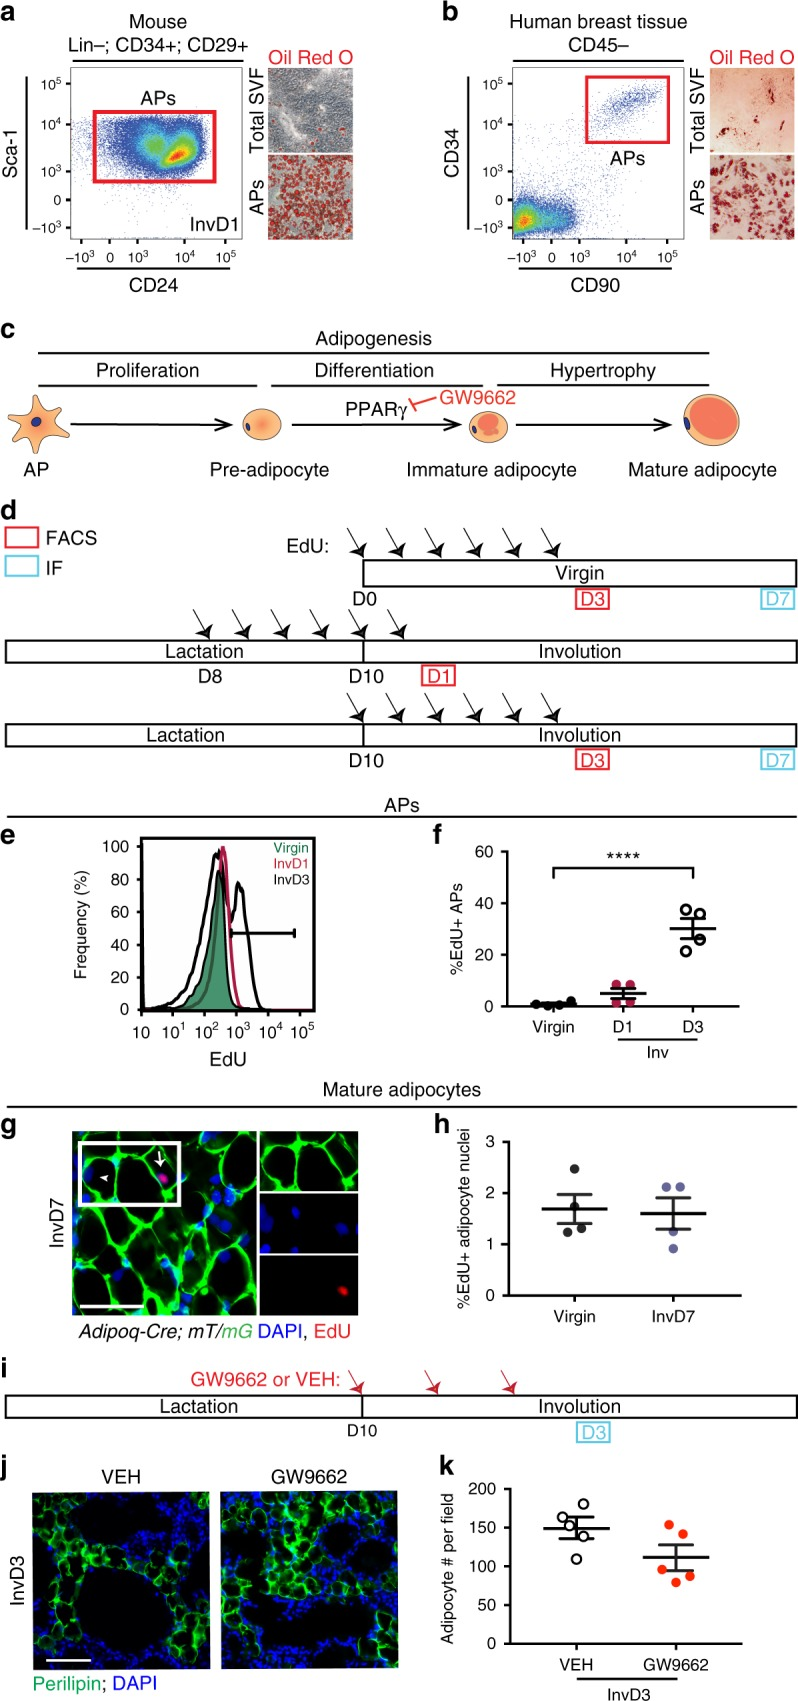 Evaluation of AP contribution to adipogenesis in mgWAT. a , b Representative flow cytometry plots of CD31−/CD45− (Lin−), CD34+, CD29+, Sca-1+, CD24± populations from the stromal vascular fraction (SVF) of fixed murine inguinal/mgWAT at involution day 1 ( a , left panel) or CD45−, CD34+, CD90+ cells within the SVF of human breast tissue ( b , left panel). Representative images of unpurified cells in total SVF or FACS purified adipocyte precursors (APs) from mice ( a , right panel) or humans ( b , right panel) after culturing in adipogenic media for 8 days ( a ) or 13 days ( b ) and staining with Oil Red O. n = 3 biological repeats. c Schematic summarizing stages of adipogenesis. d Experimental strategy to measure EdU incorporation in adipocyte precursors by FACS (as in e and f ), and in mature adipocytes (as in g , h ). e Representative flow cytometry plots of EdU signal in APs (as defined in a ) in virgin mice and at involution days 1 and 3. f The average percentage of EdU+ APs identified with flow cytometry as in e . n = 4 mice per time point, P = 0.51 for virgin vs. involution day 1 data. g, h Representative image ( g ) and quantification ( h ) of EdU immunofluorescence in Adi p oq-Cre; mT/mG mouse injected with EdU according to the timeline in d . Note EdU+ (arrow) and EdU− nuclei (arrowhead) in mGFP+ adipocytes. White box indicates insets. n = 200–800 nuclei in each of four mice per group, P = 0.84. i Experimental strategy to inhibit adipogenesis during involution using GW9662, a pharmacological antagonist of PPARγ. j , k Representative image ( j ) and quantification ( k ) of MGs from GW9662- and vehicle-treated mice, stained with a perilipin antibody and DAPI. N = 8–17 fields in each of five mice per treatment group, P = 0.09. Scale bar is 50 μm in g and j . Data are mean ± SEM. Statistics were performed using a one-way ANOVA with Tukey's multiple comparisons test ( f ) and a two-tailed unpaired t -test ( h , k ). **** P